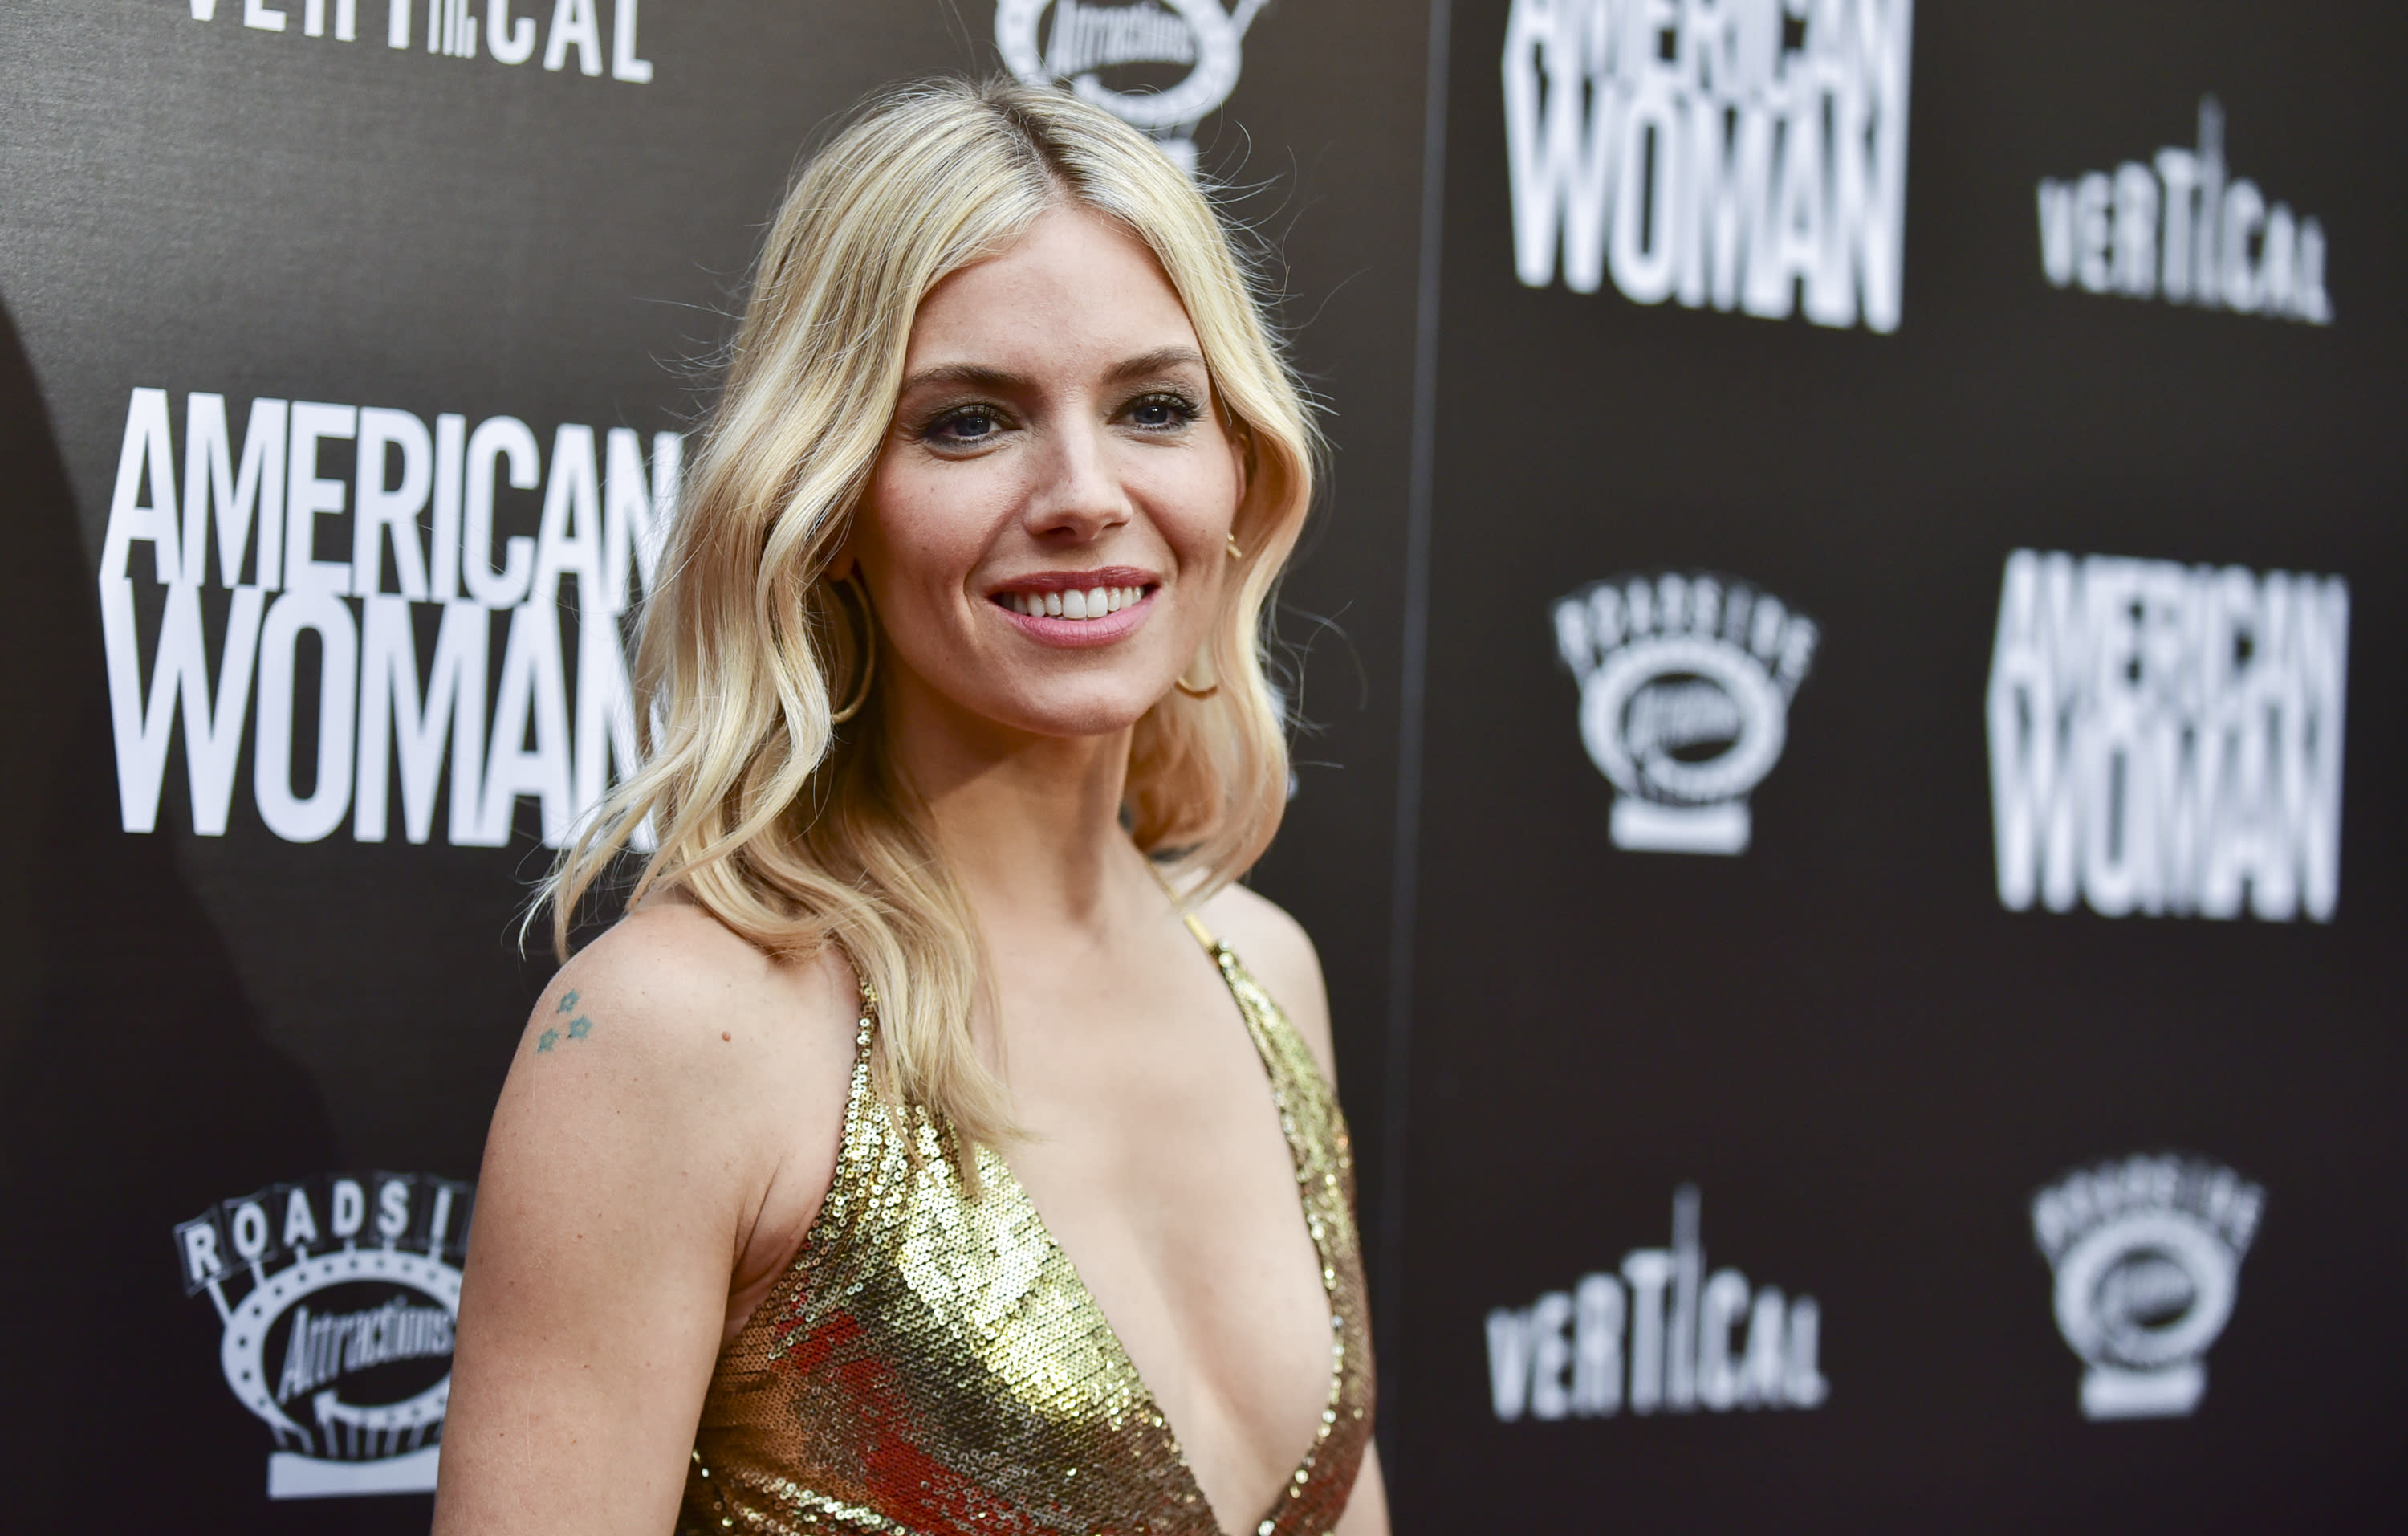 Sienna Miller talks being 'screamed at,' 'underpaid,' 'undervalued' and 'treated like s***' as a Hollywood actress